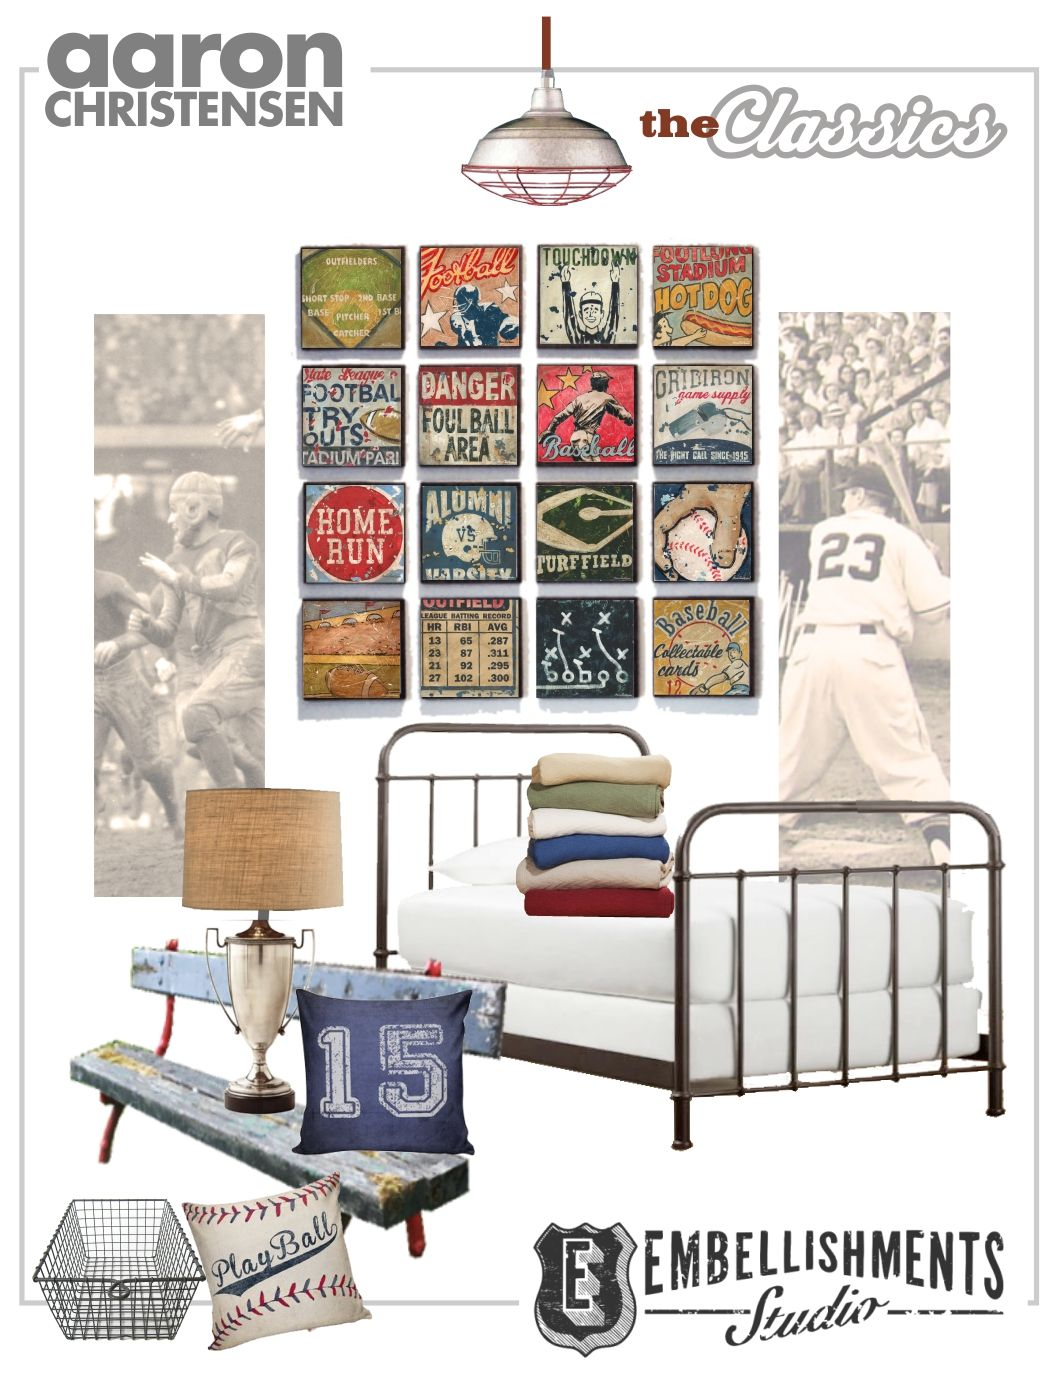 Baseball And Football Sports Decor Inspiration Mood Board Featuring Clic Furnishings Accessories Wall Art